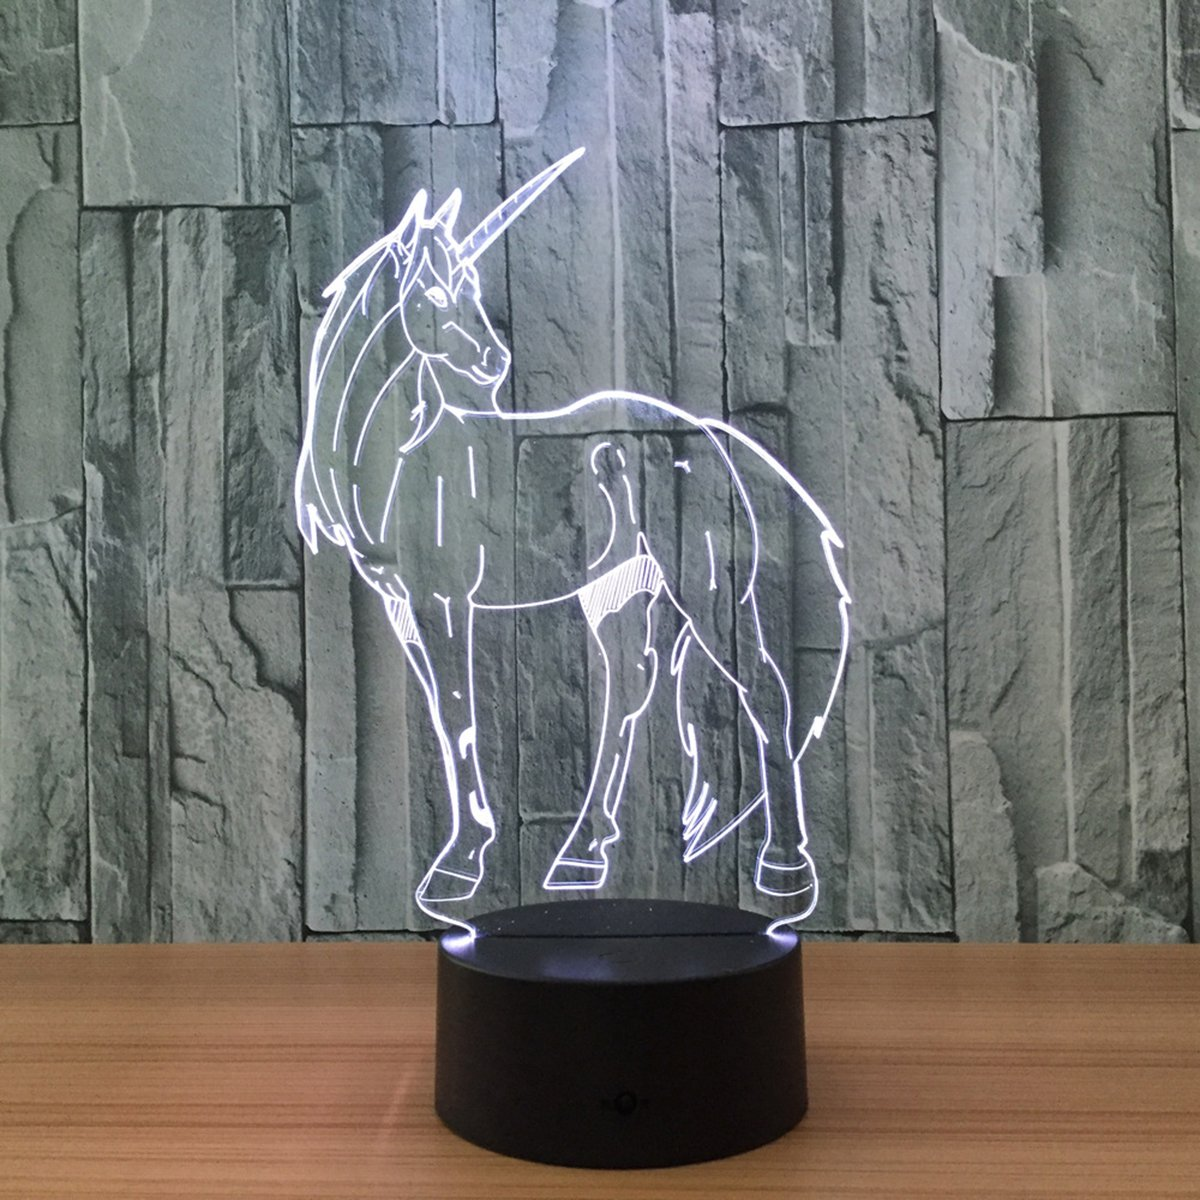 Novelty Unicorn 3D Illusion Lamp Led Night Light with 7 Colors Flashing & Touch Switch USB Powered Bedroom Desk Lamp for Kids Gifts Home Decoration by Atglus (Image #5)